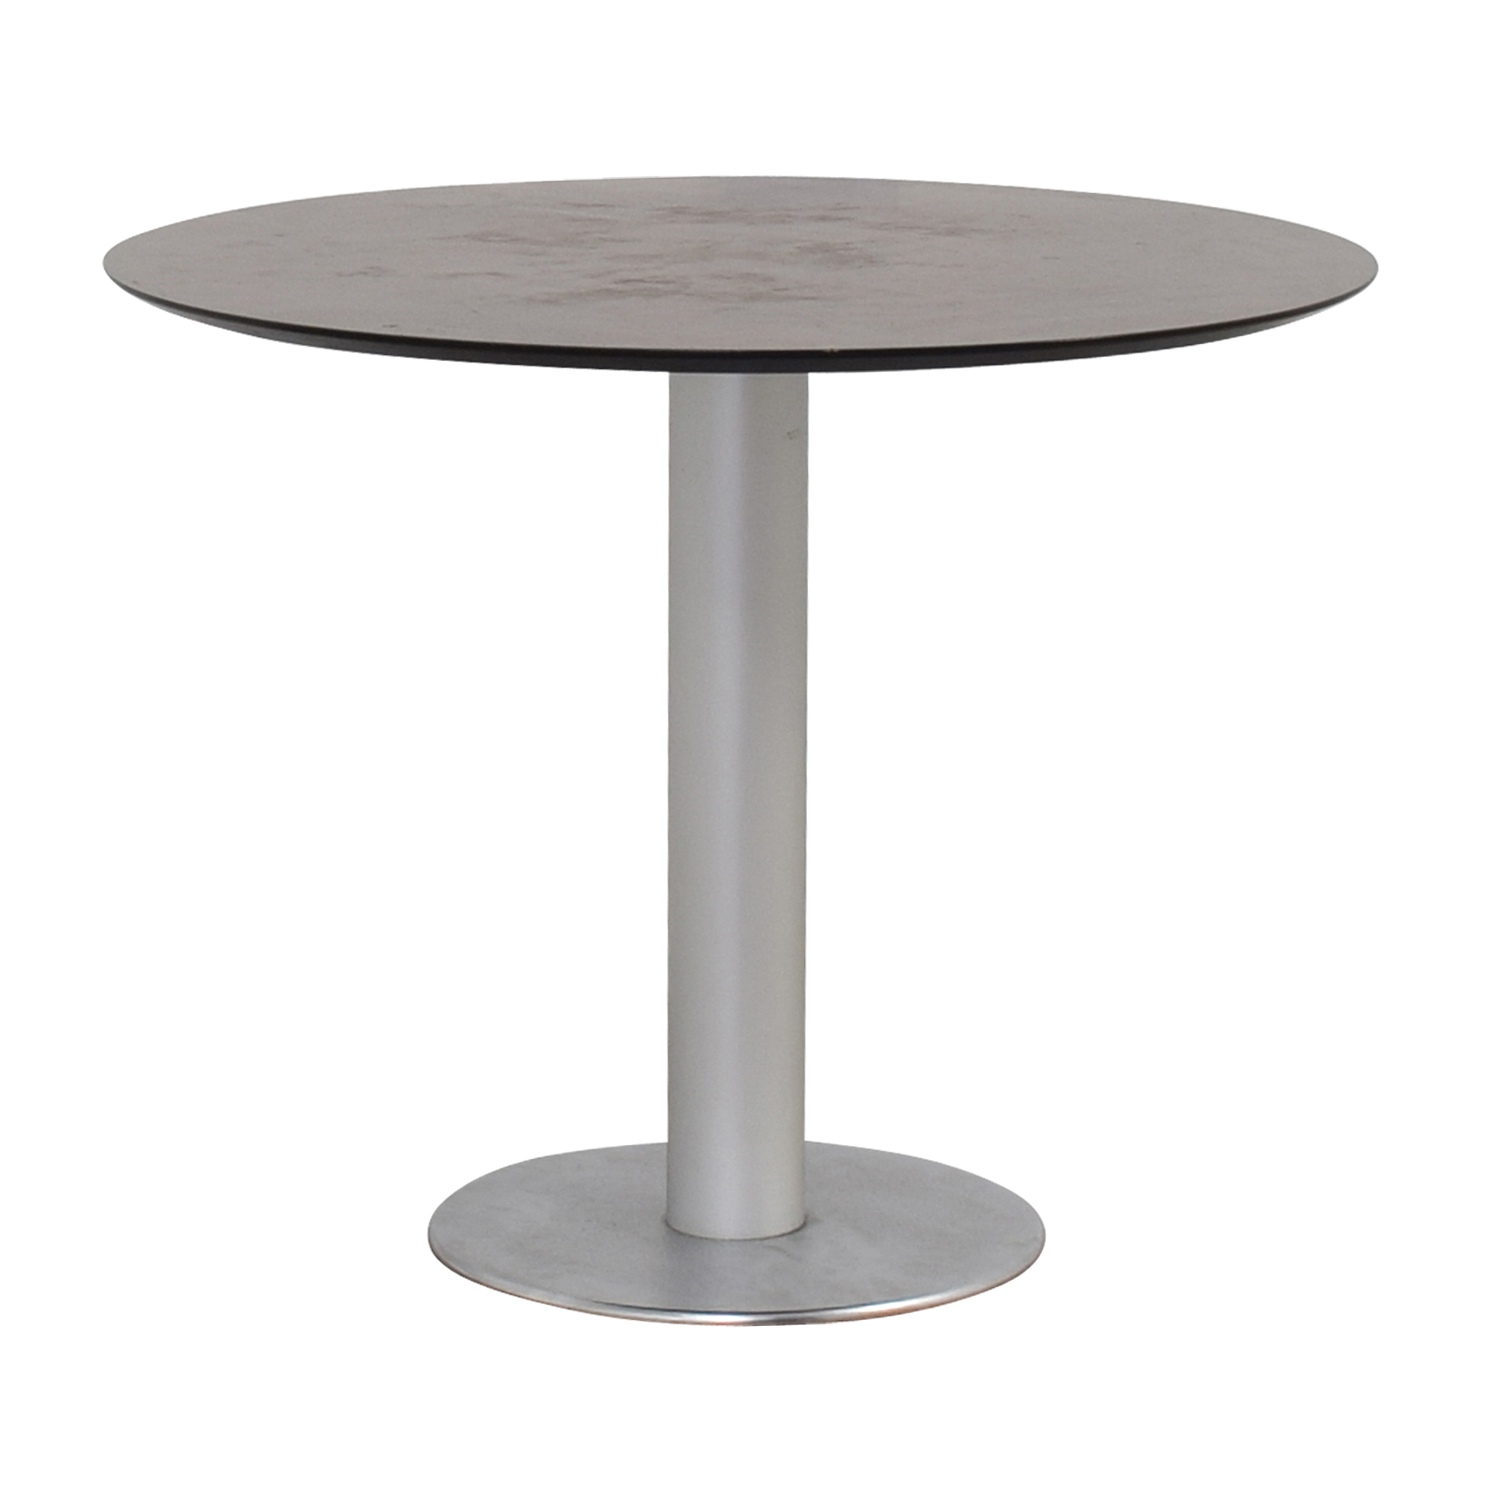 Stua Stua Zero Wood and Chrome Round Table coupon